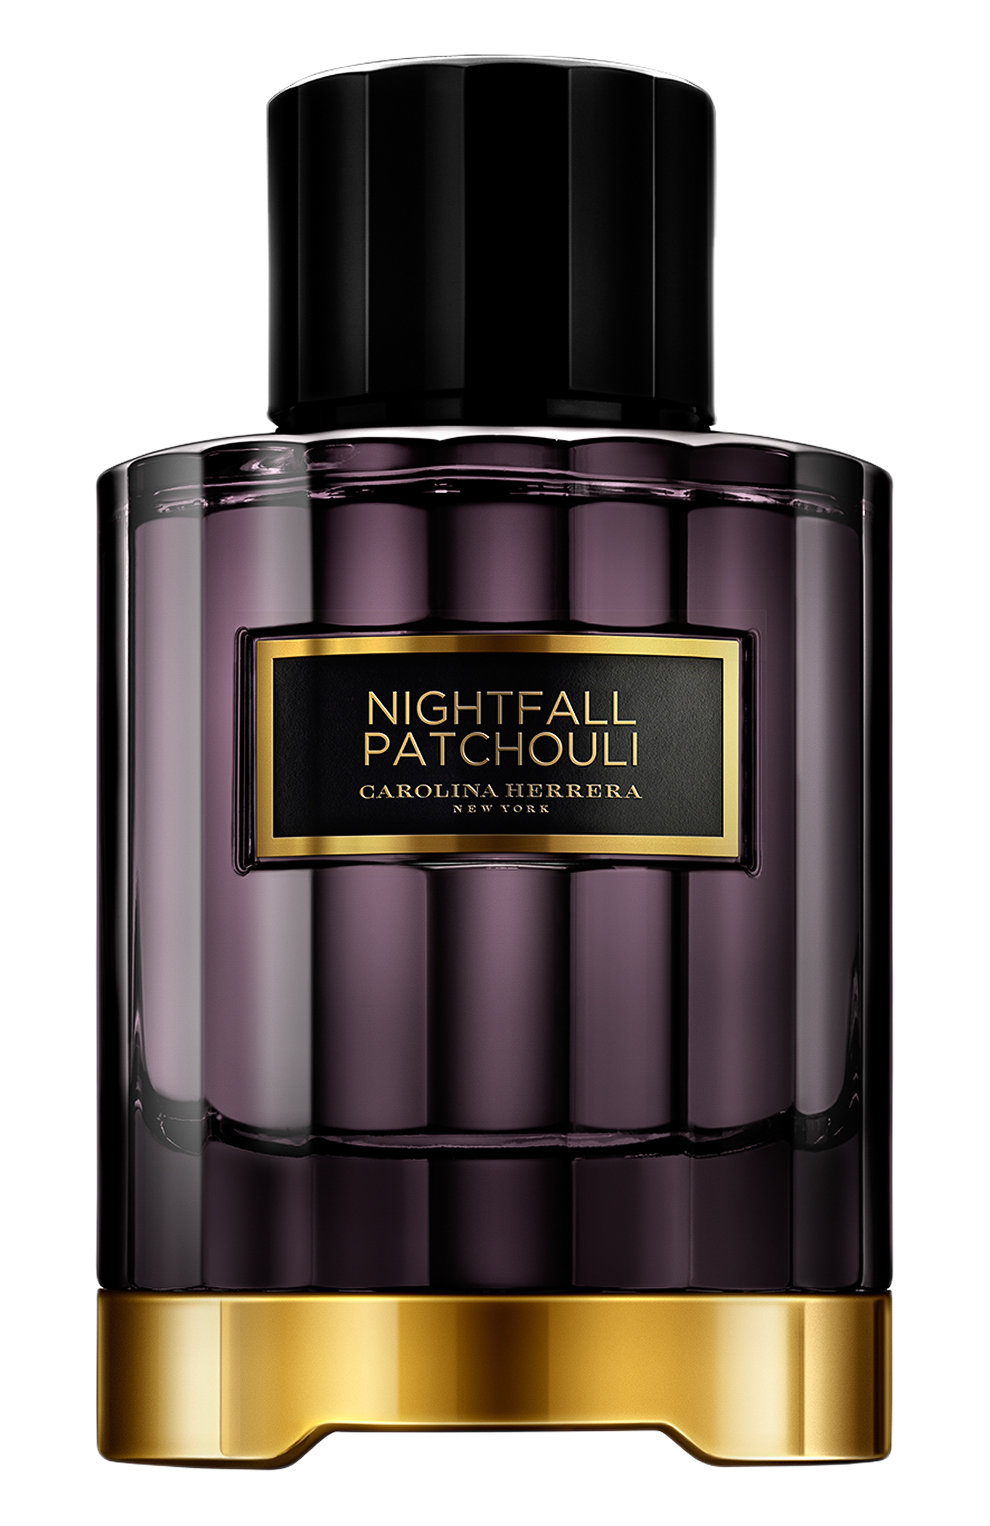 Carolina Herrera Nightfall Patchouli